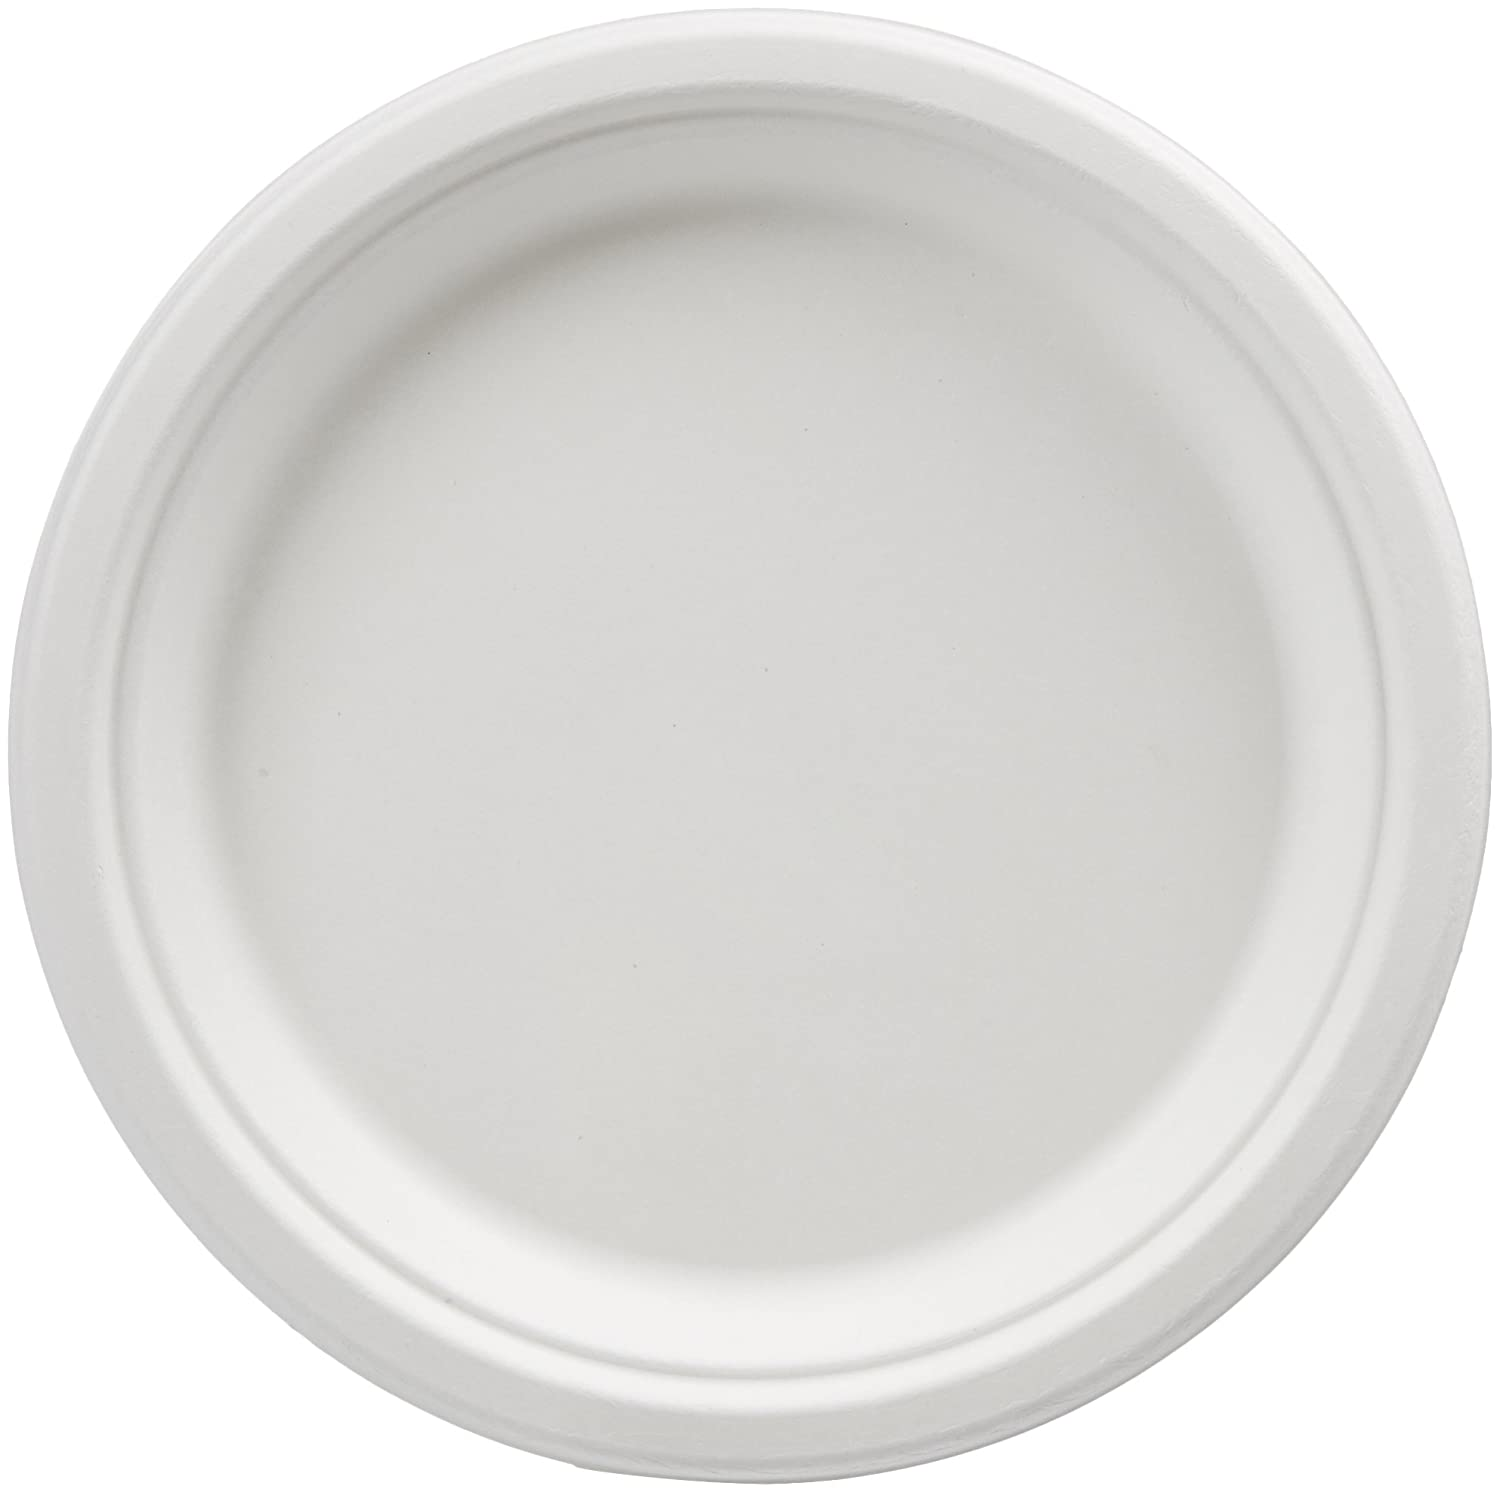 AmazonBasics 9-Inch Compostable Plates, 500-Count